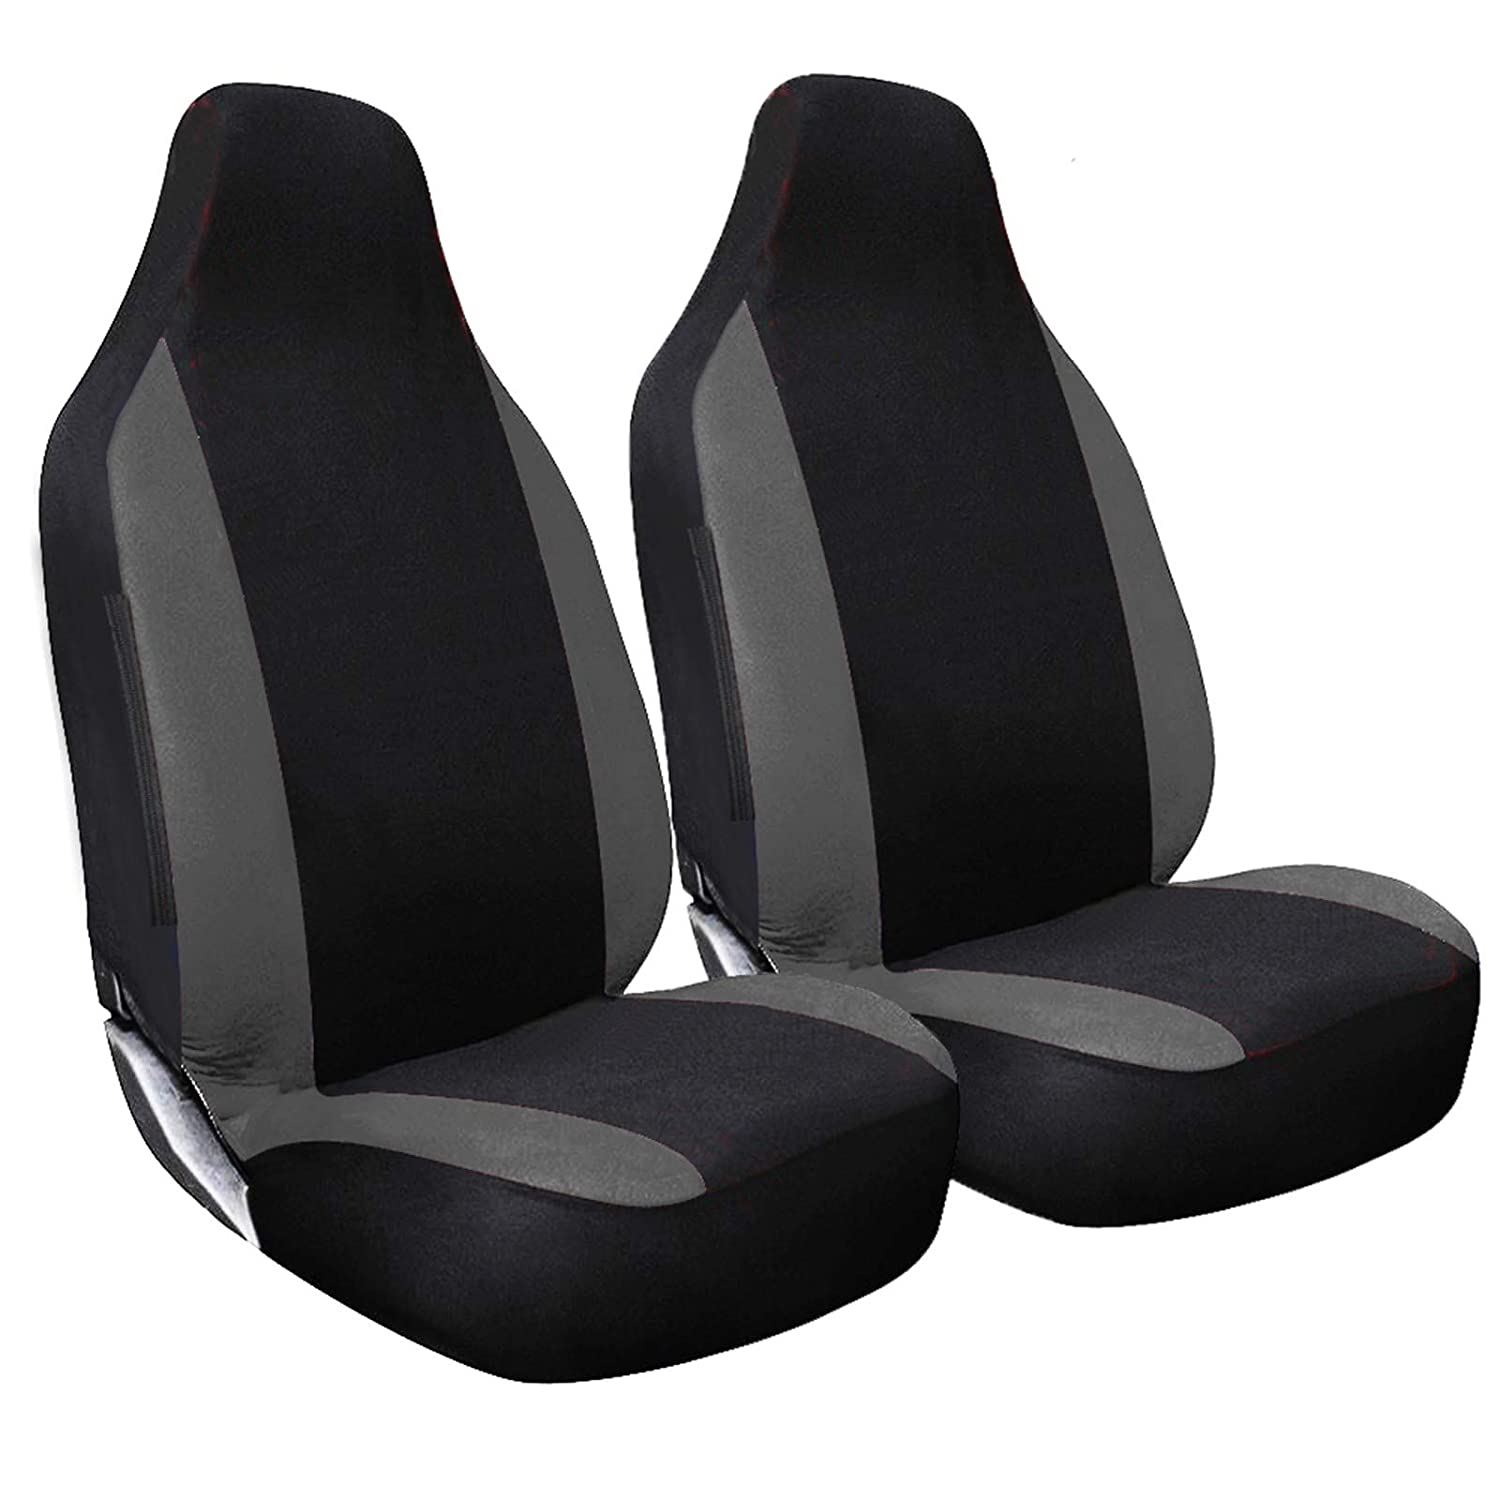 Shield Autocare /© RACE1+1-GREY Black with Grey Racing Panels Car Front Seat Covers Protectors 1+1-L1226